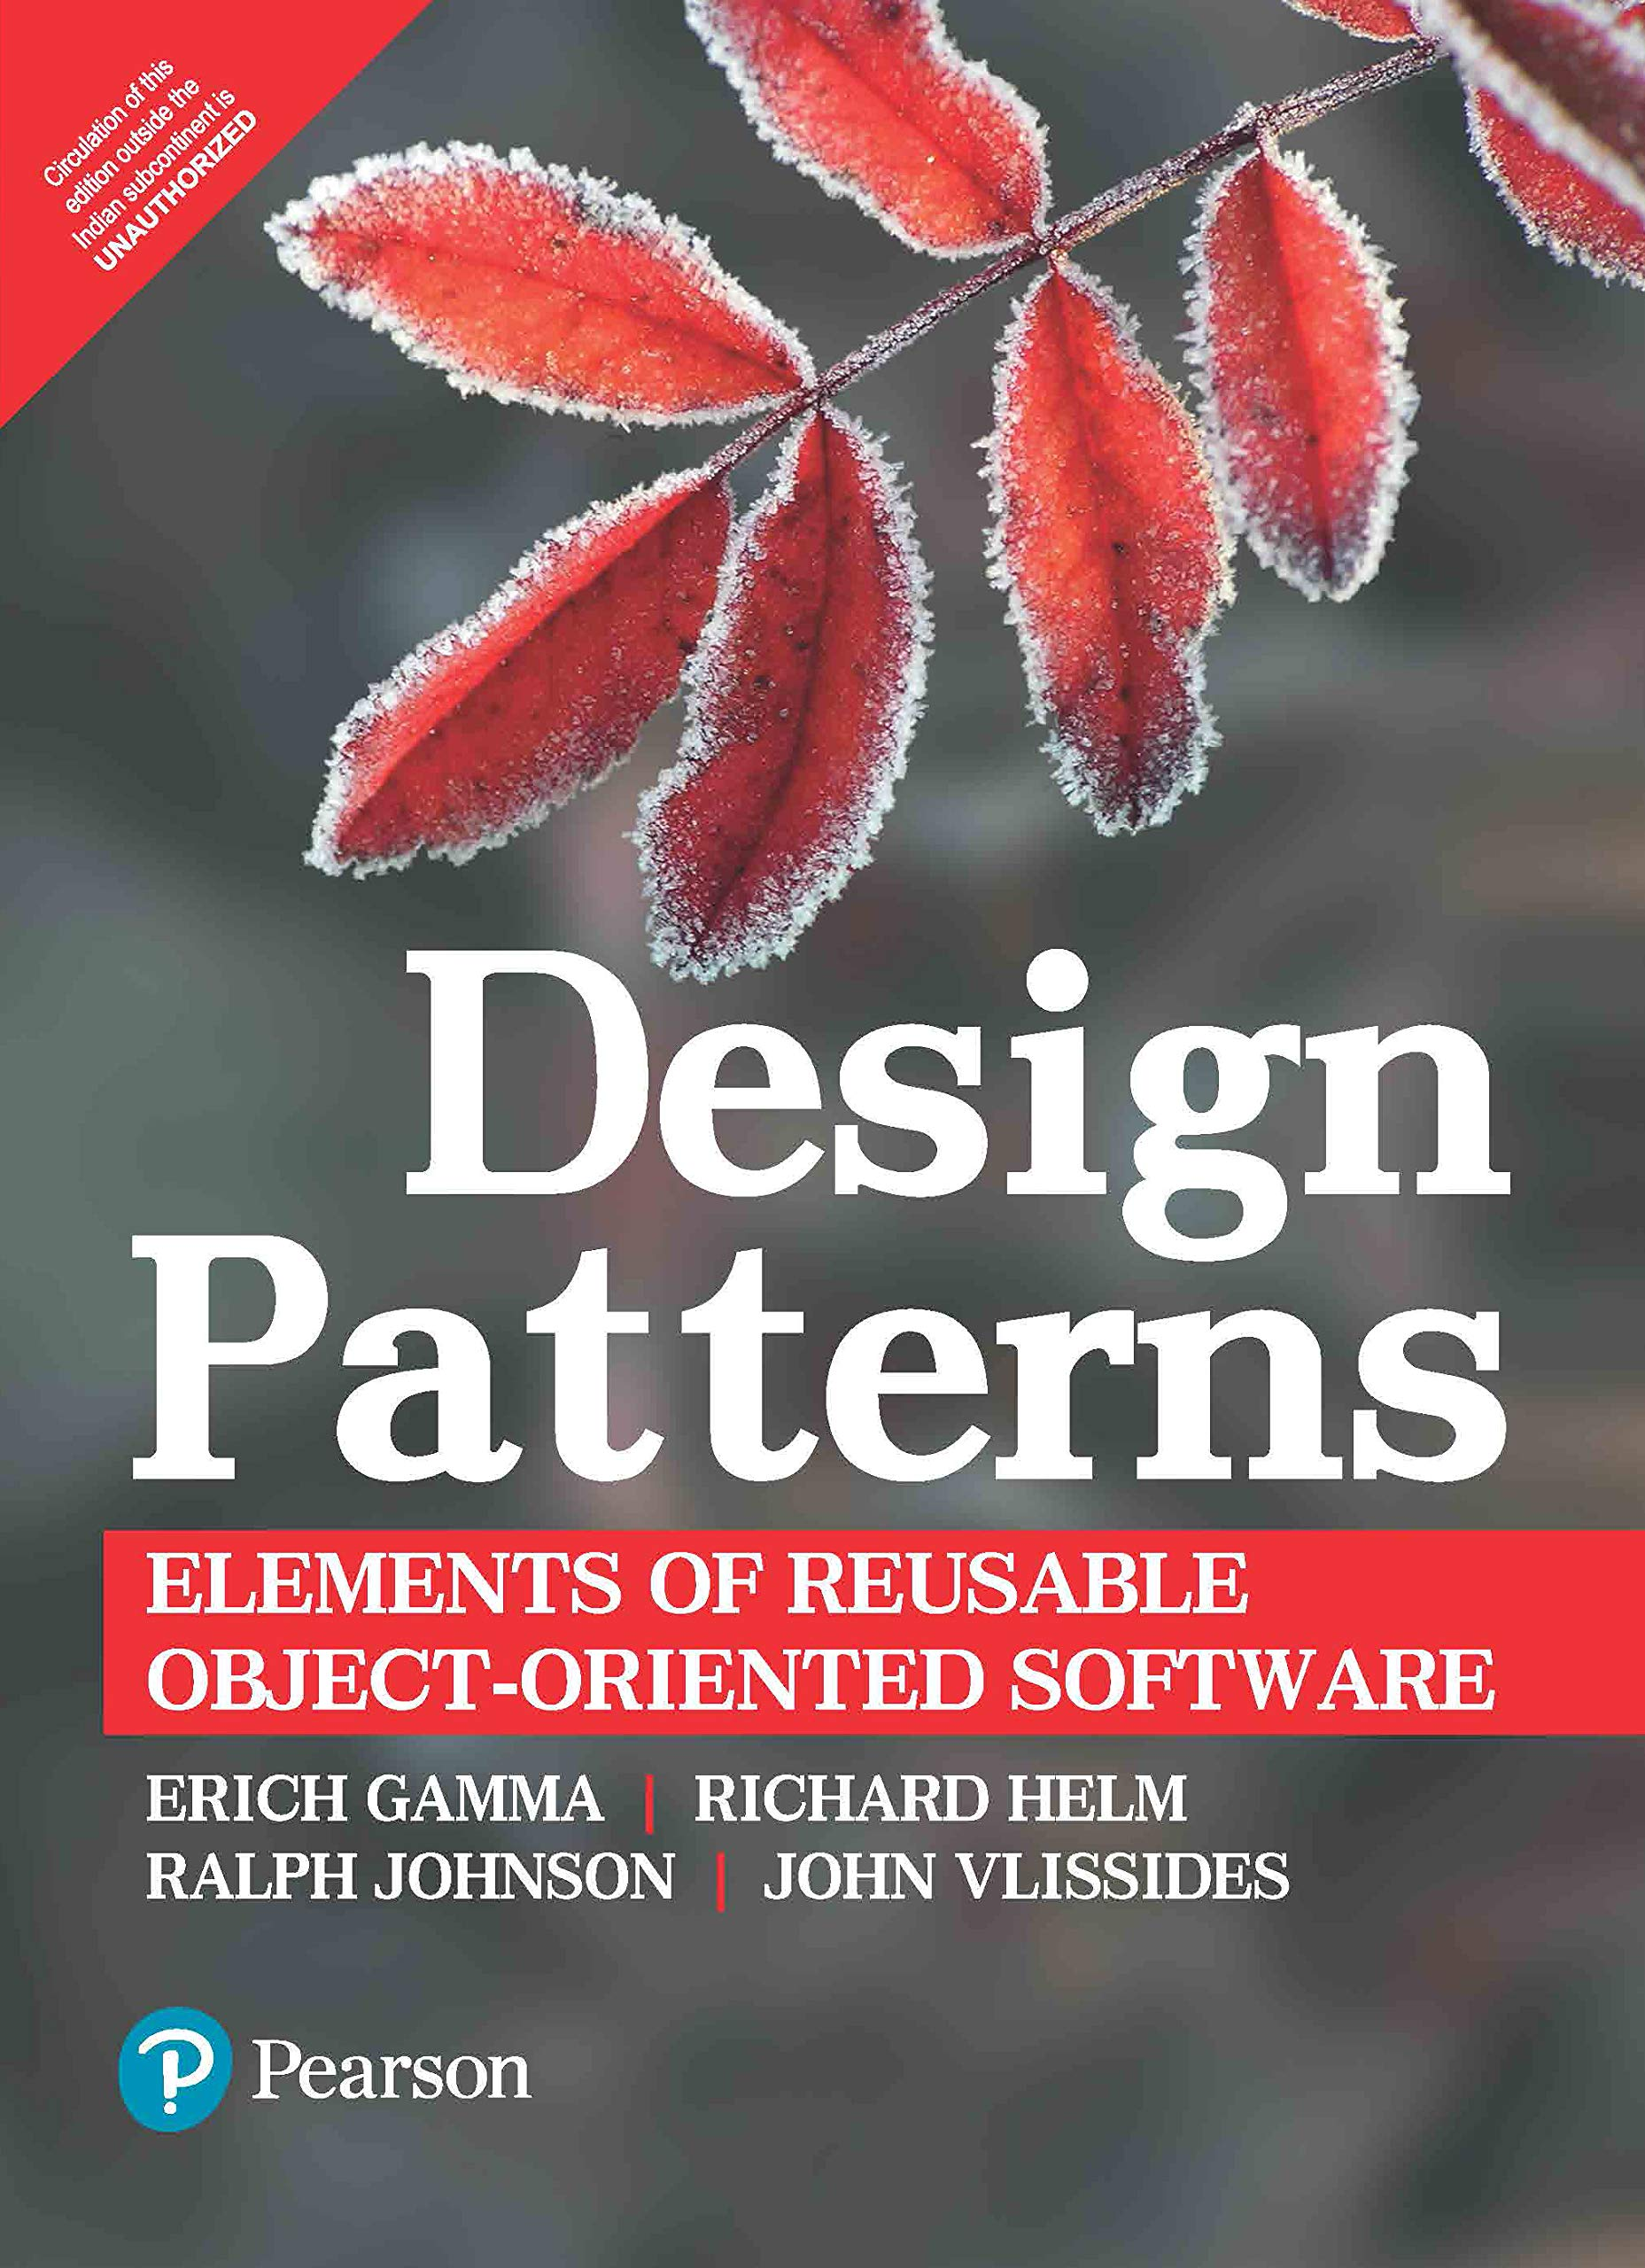 Design Patterns Elements Of Reusable Object Oriented Software Erich Gamma Richard Helm Ralph Johnson John Vlissidess 0009332555400 Amazon Com Books